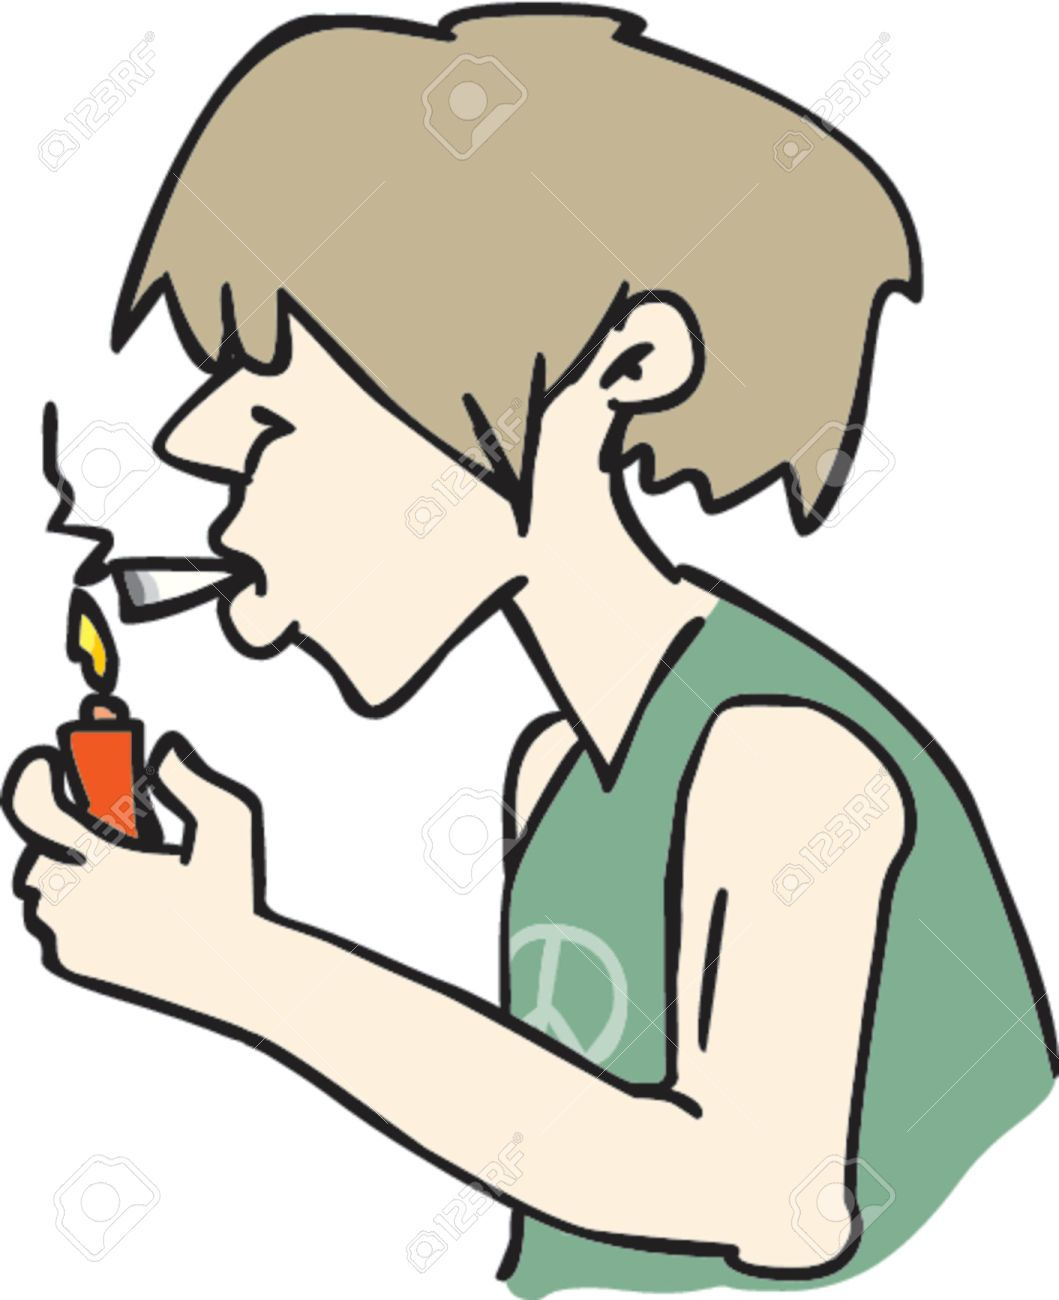 Smoking weed clipart